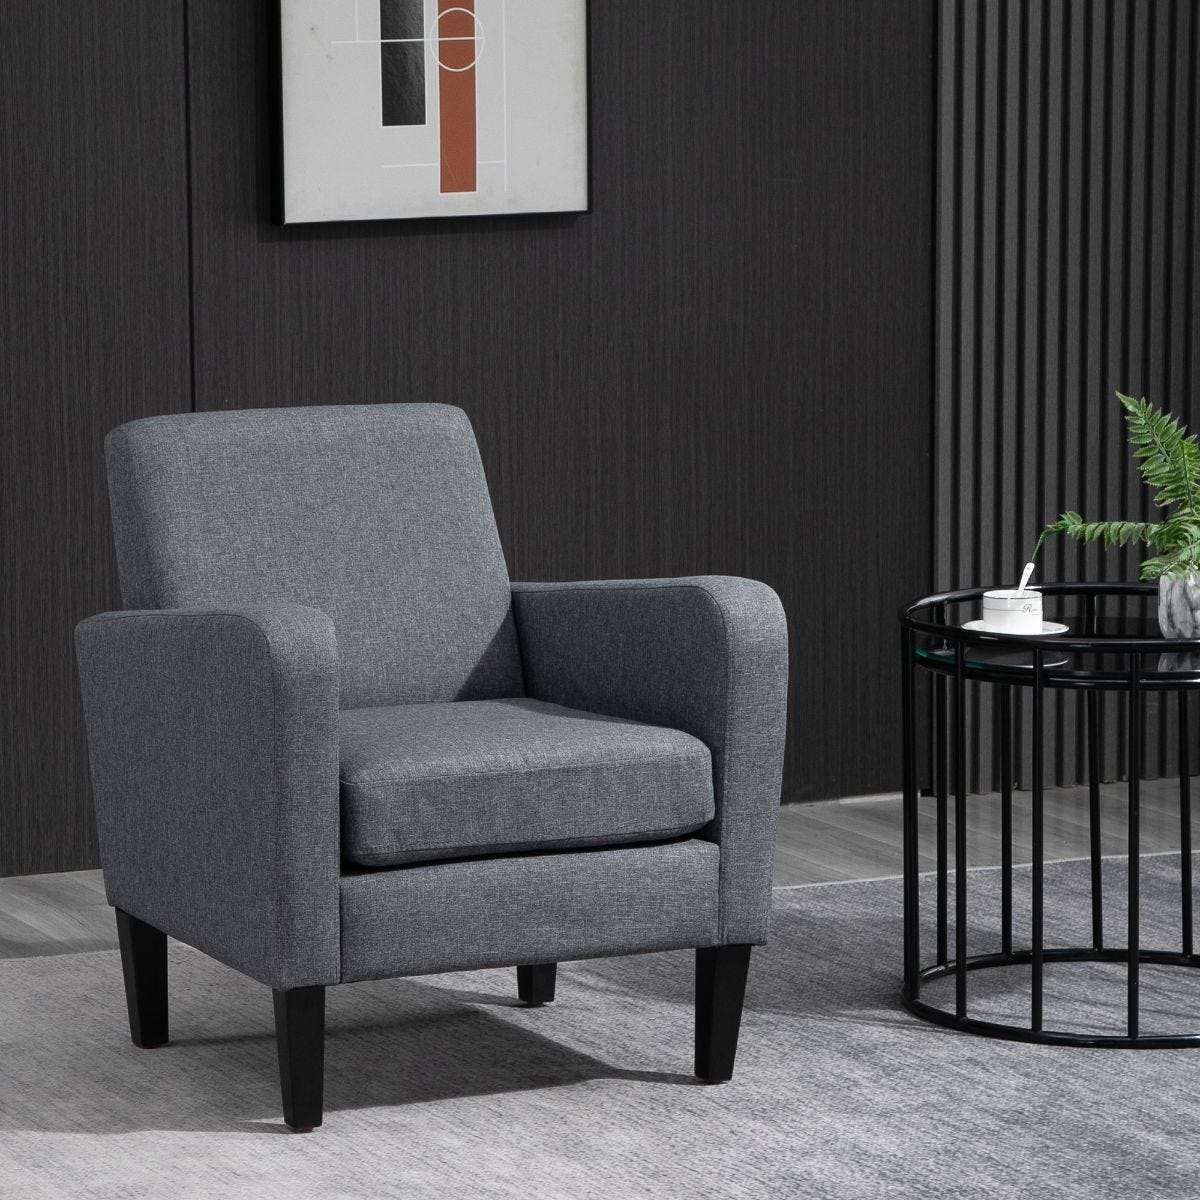 Linen Modern To Curved Armchair Accent Seat With Wood Legs Grey